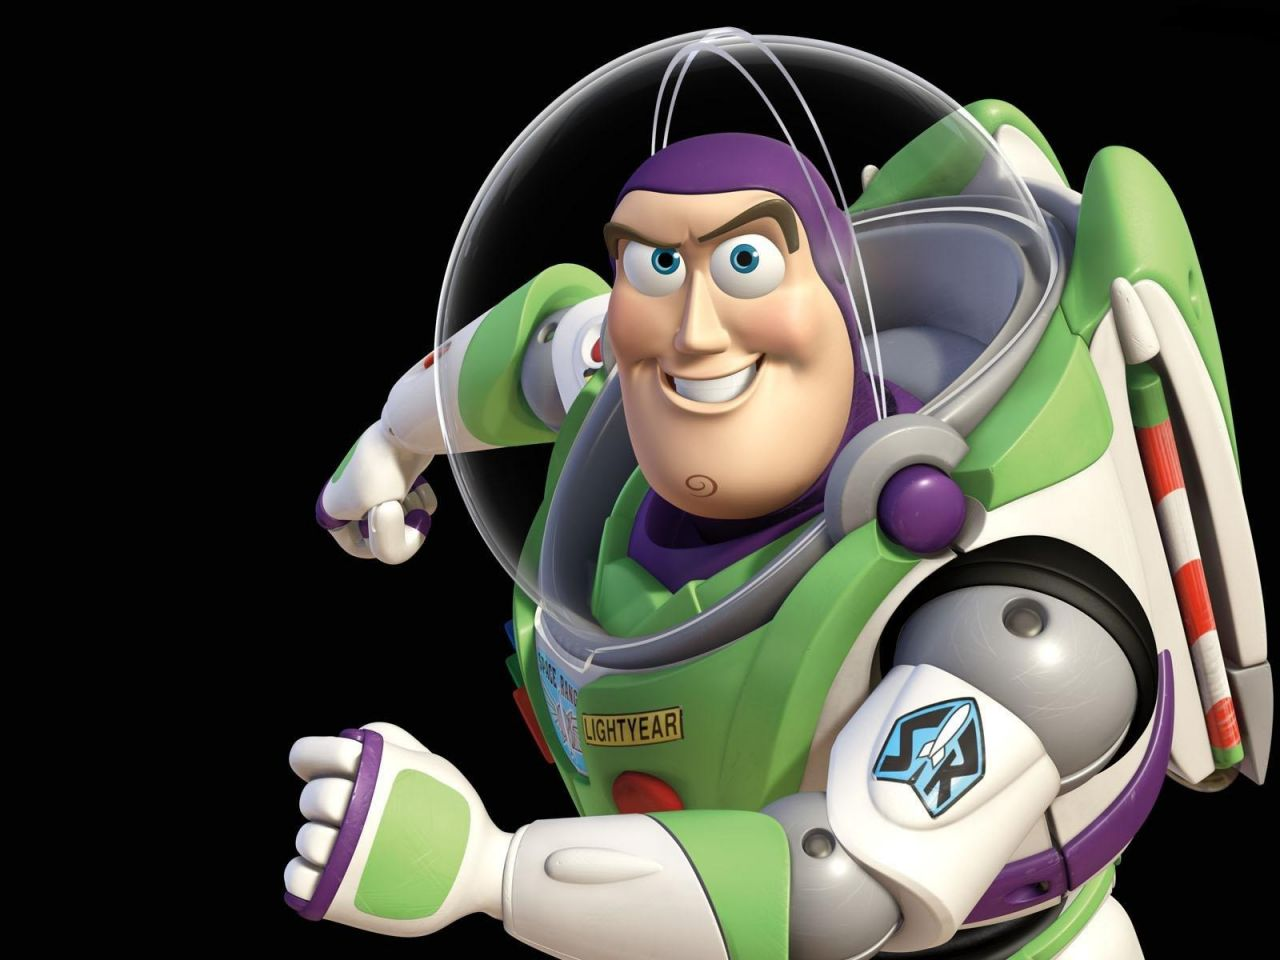 Buzz Lightyear Sideview Pose Wallpaper 1280x960